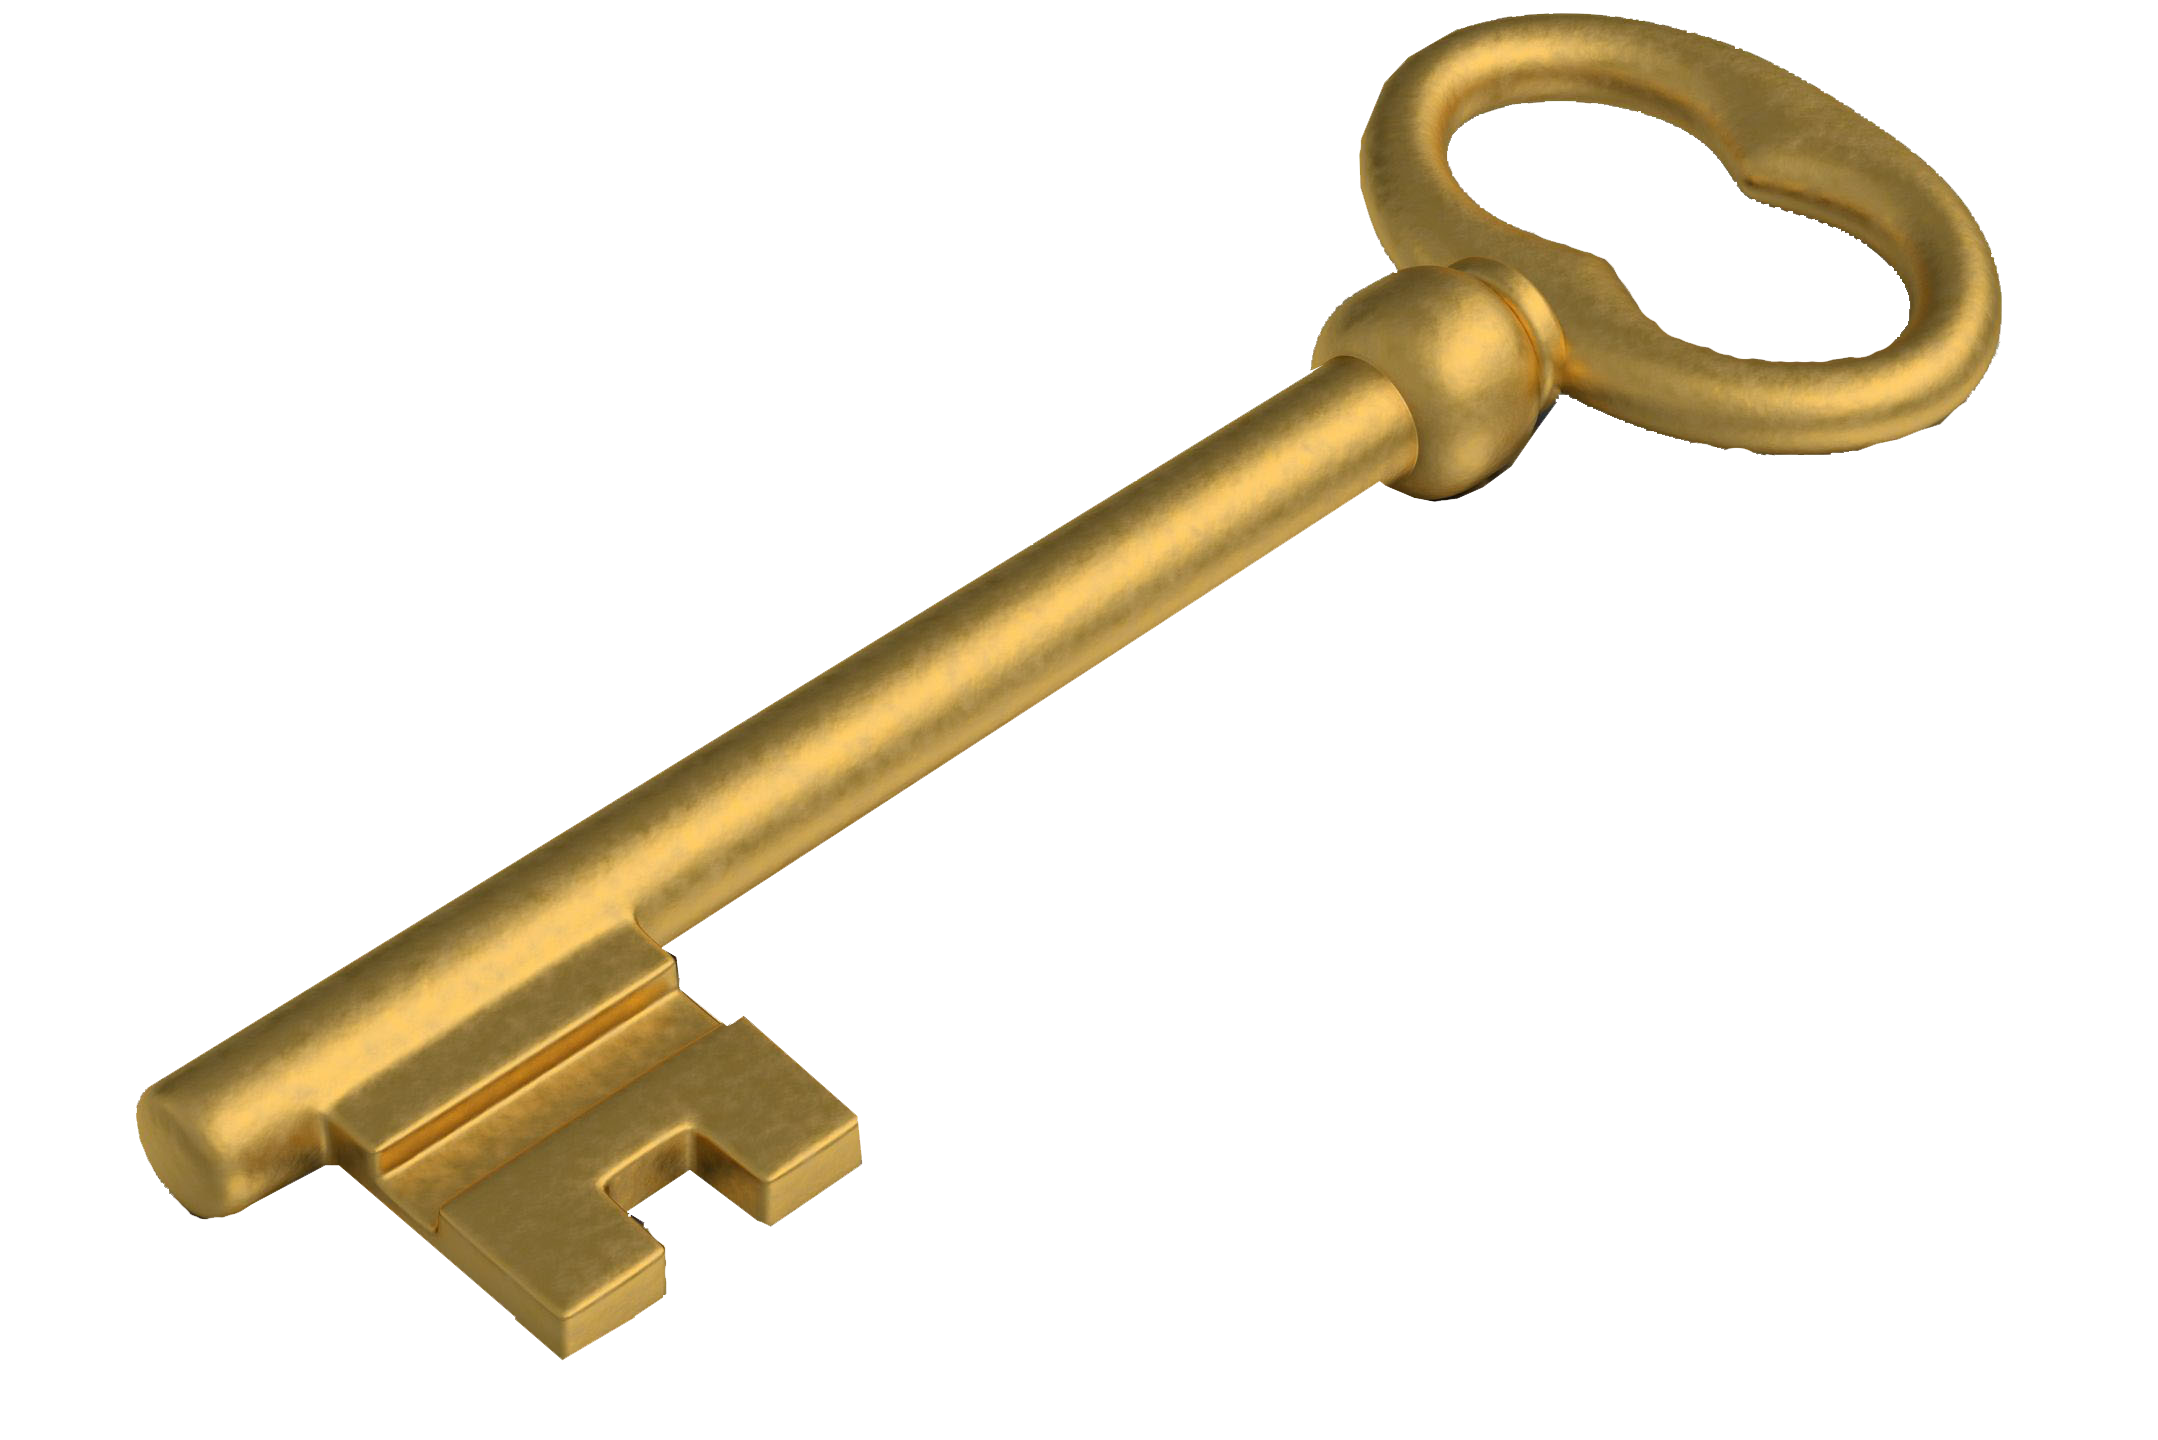 Golden Key - LIBERTY (SECURITY PRIVACY SAFETY) THE ILLUSION OF FREE WILL - TOTAL FREEDOM OF SPEECH - TOTAL FREEDOM OF THE PRESS - UNIVERSAL SPENDING AUTHORITY - PRIVATE PROPERTY - FREE LAND - THERE IS NO GOVERNMENT - A GUARANTEED LIFETIME INCOME - NOW YOU OWN YOUR HOME AND LAND - NOW YOU HAVE AN INCOME - YOU WILL ALWAYS OWN YOUR HOME AND LAND WHILE YOU LIVE THERE - YOU ARE SAFE AND SECURE